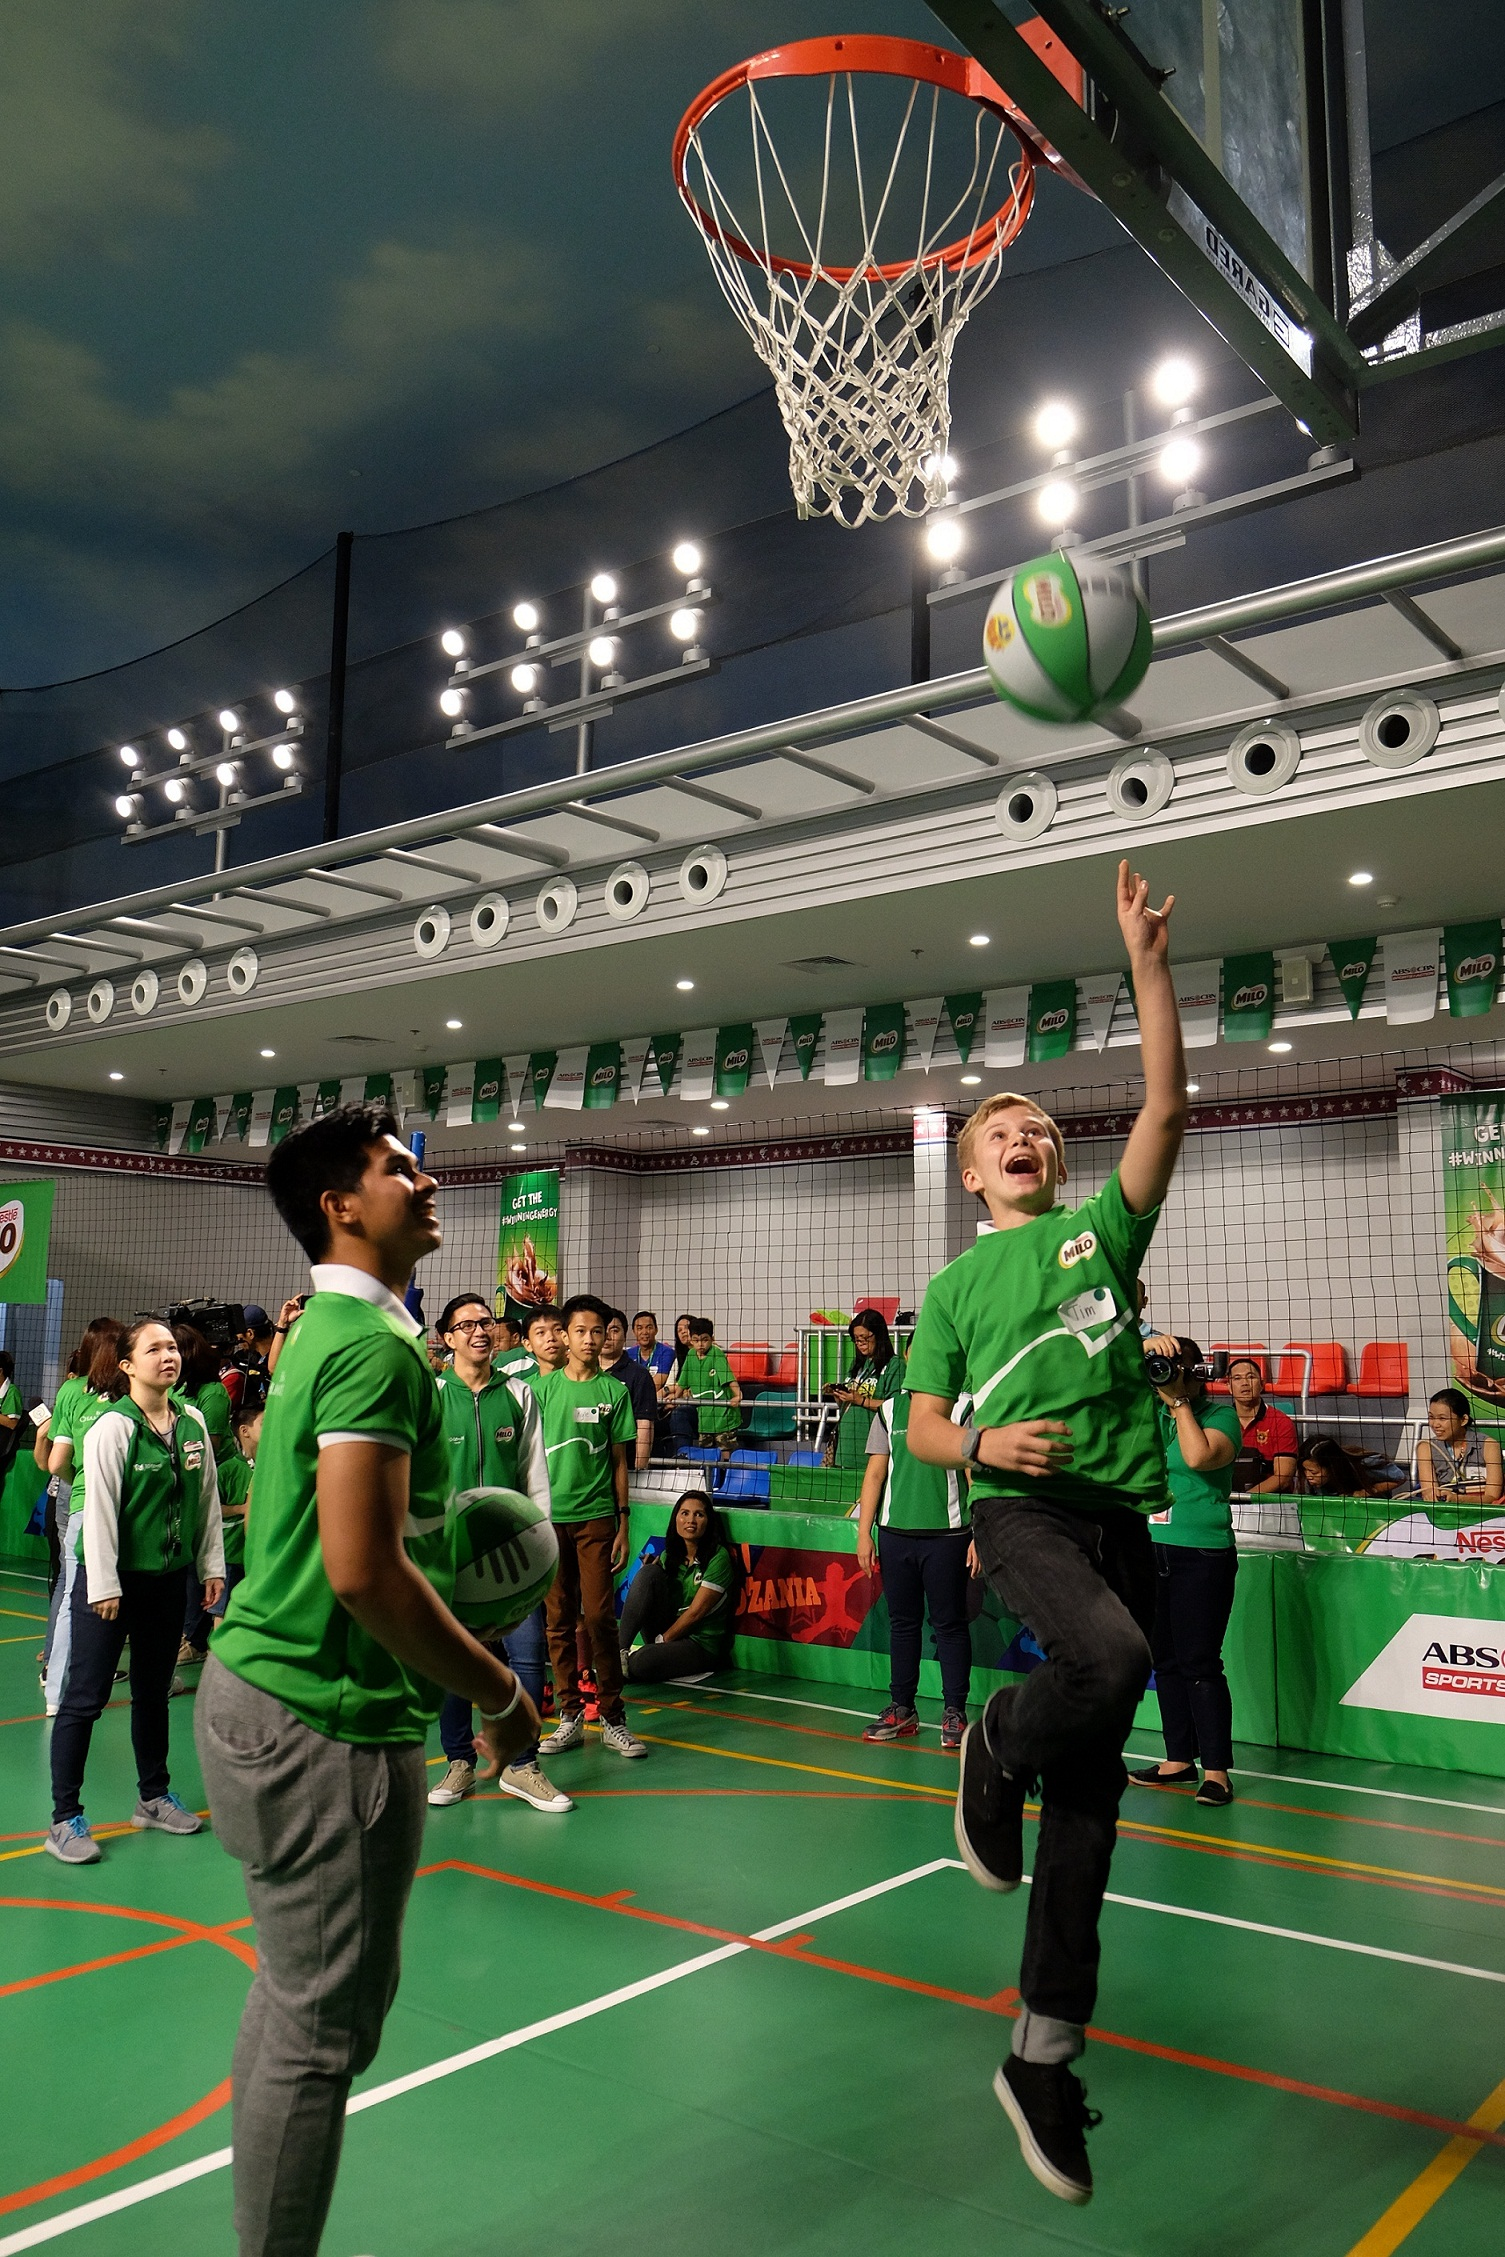 MILO athlete, Kiefer Ravena, helped kids energize their body and mind, andsharpen their basketball moves on the court.